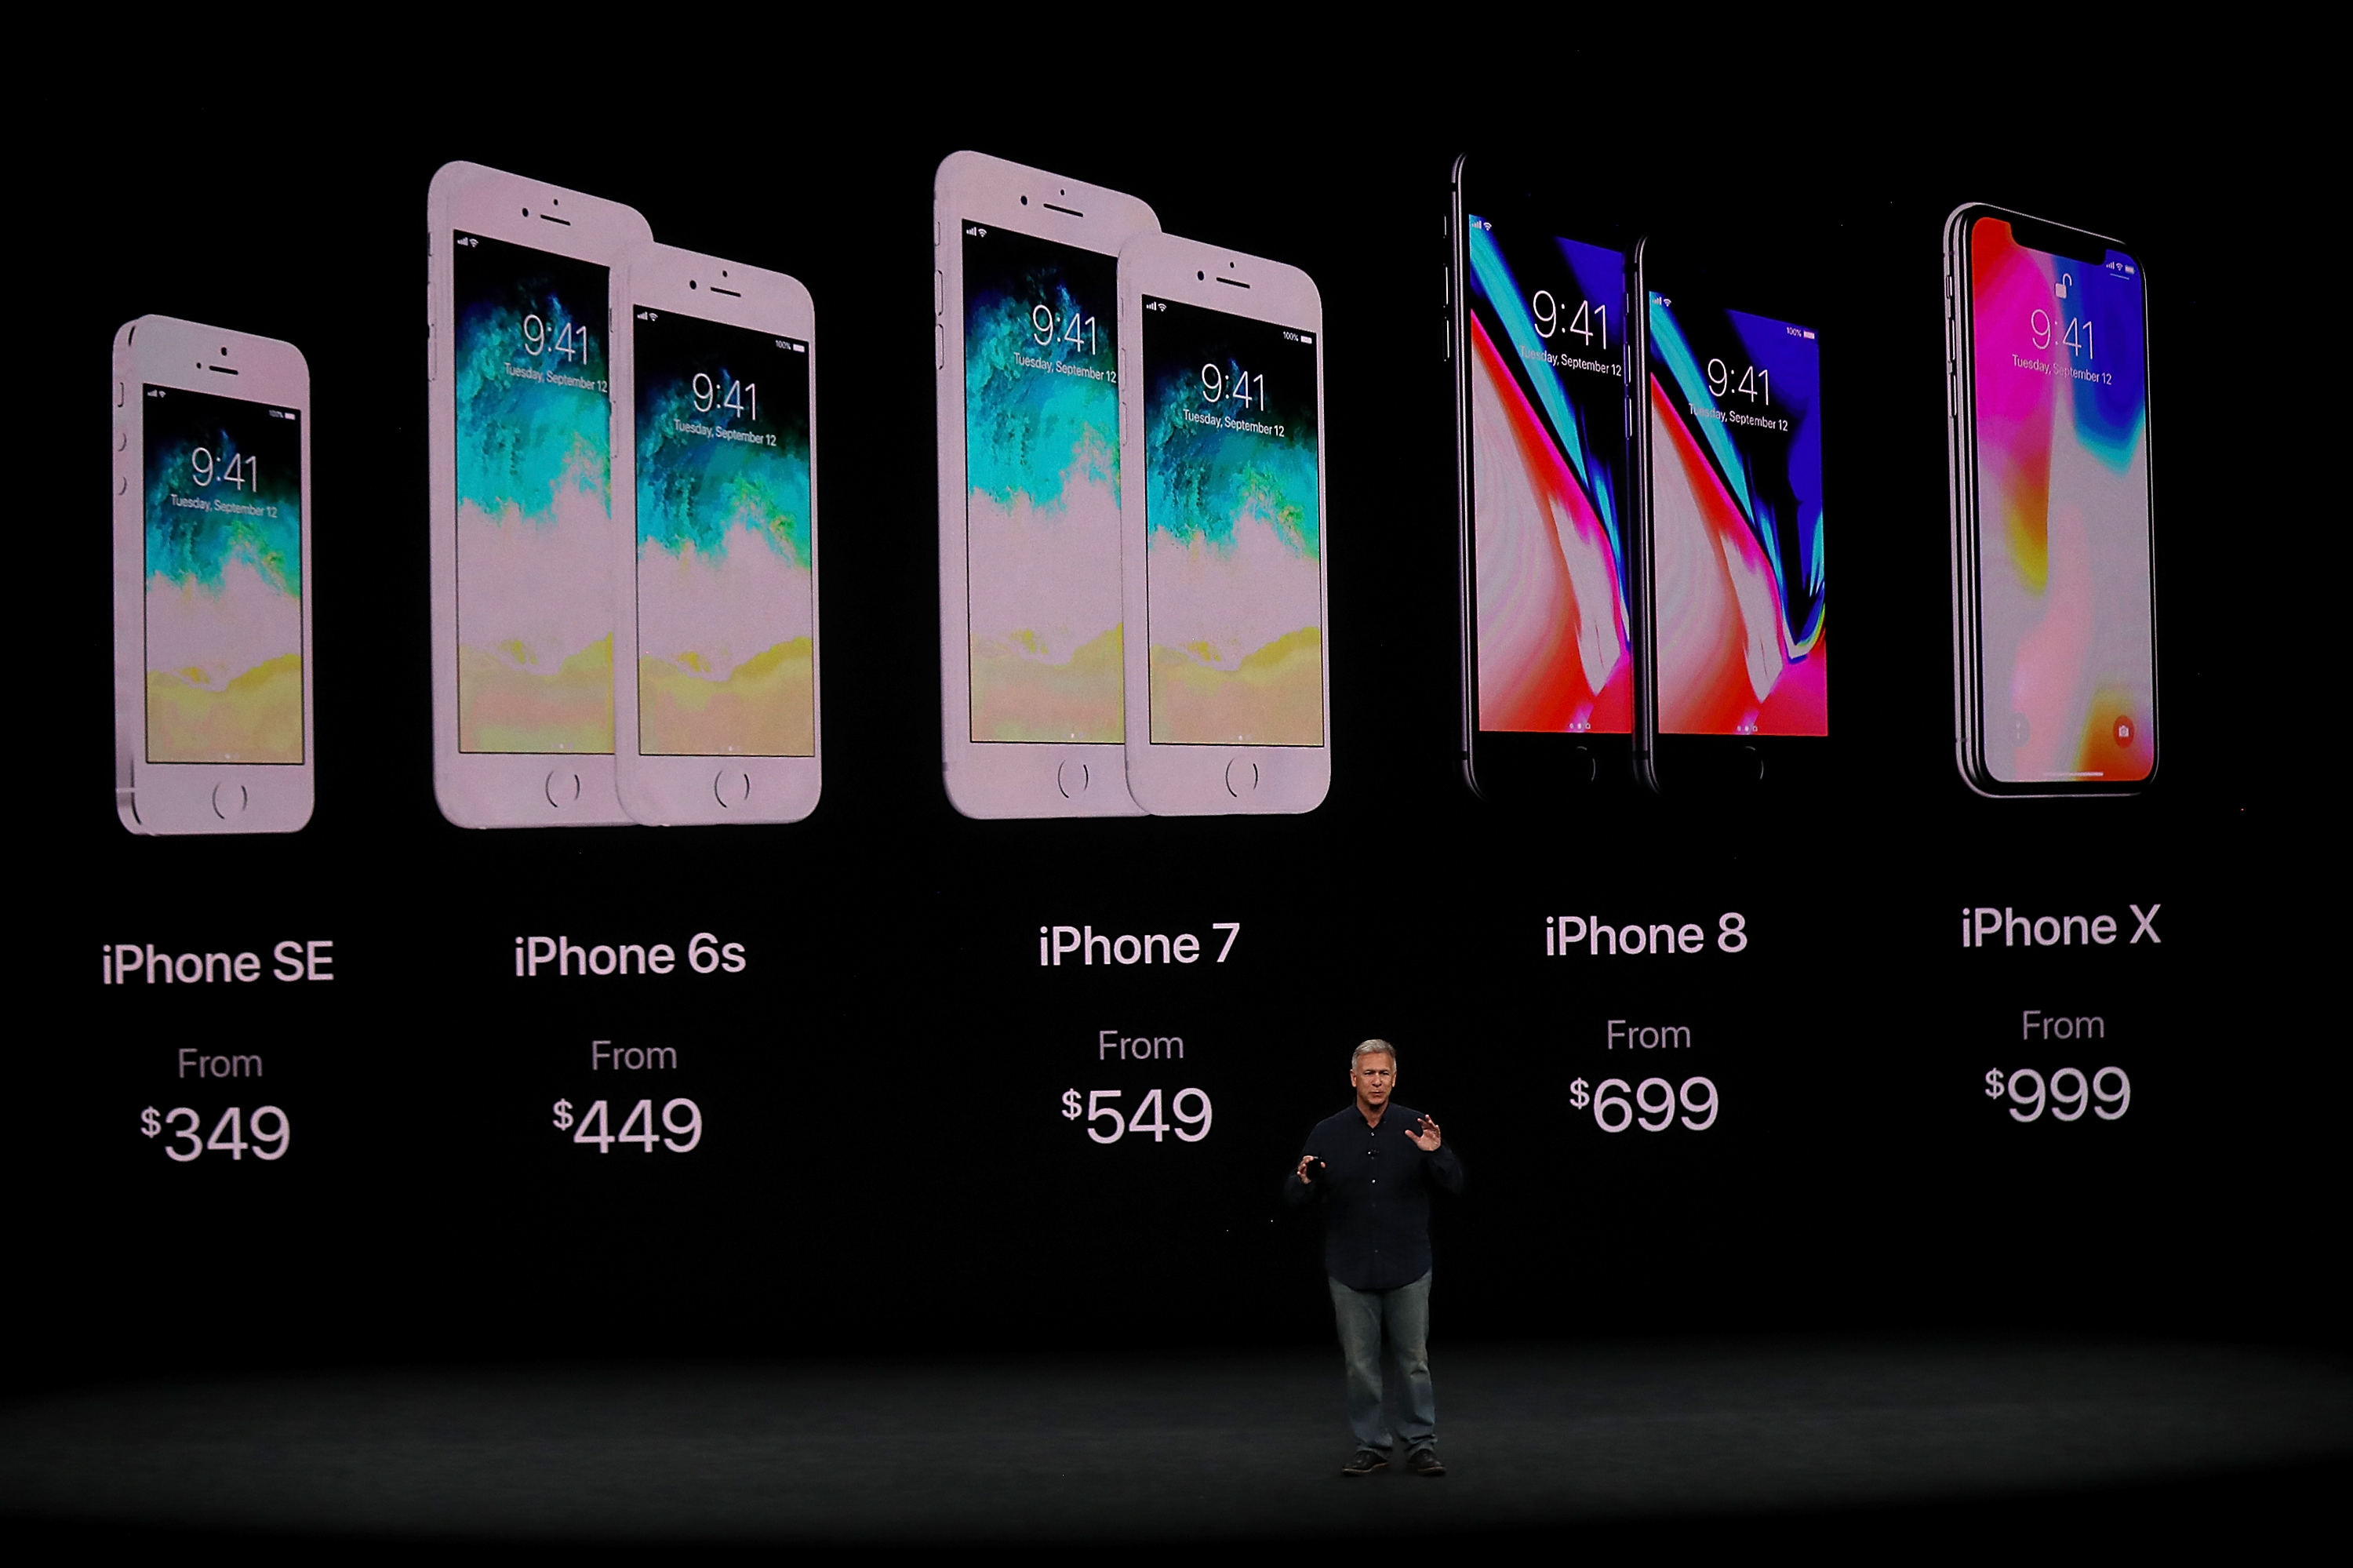 Apple senior vice president Phil Schiller introduces new iPhones (and new pricing) on the Apple Park campus on September 12, 2017.